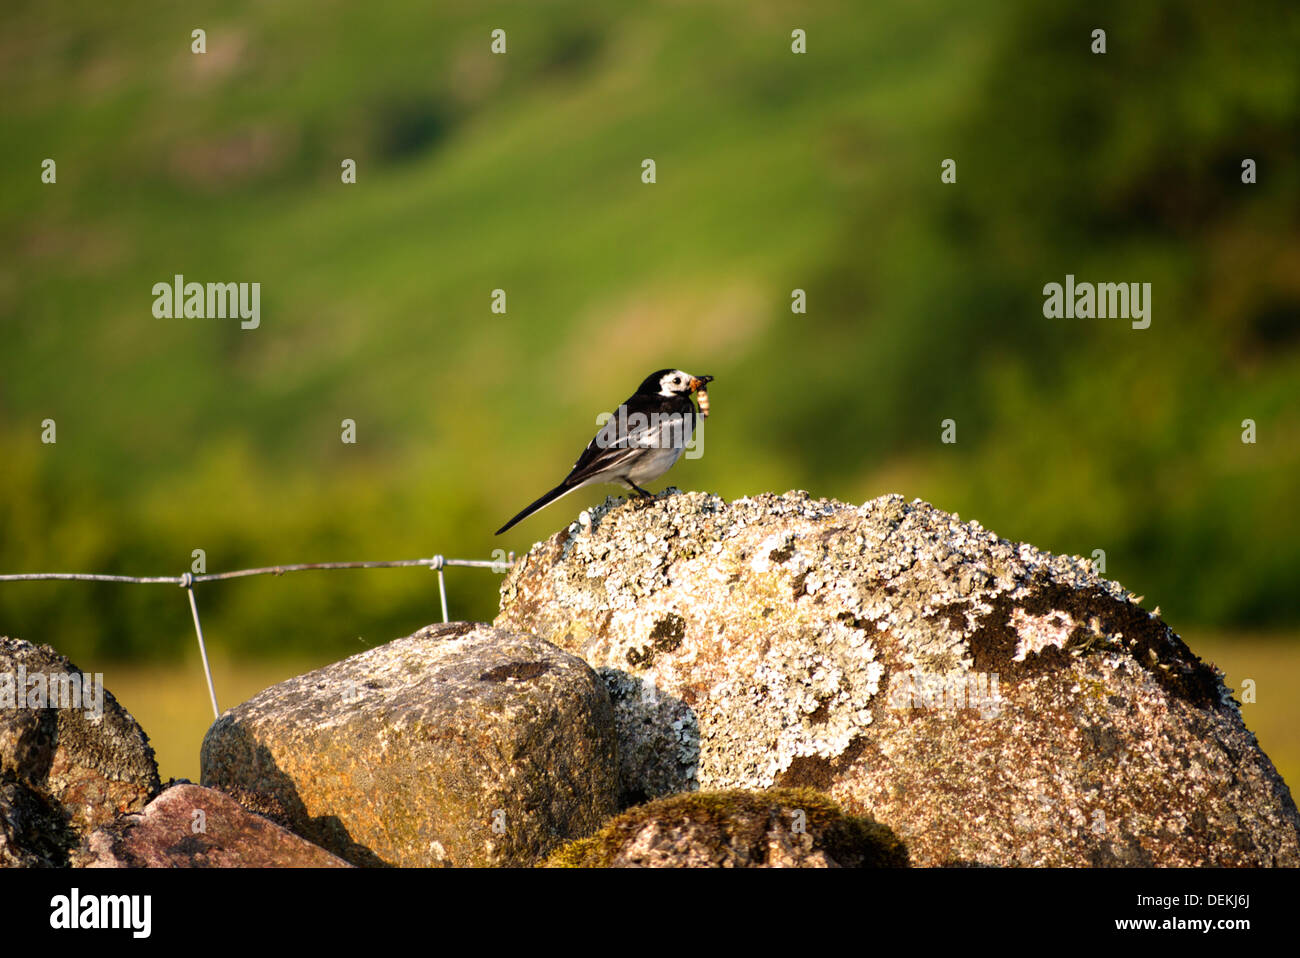 Pied Wage tail at rest on a dry stone wall, with a nice juicy grub for its young. - Stock Image